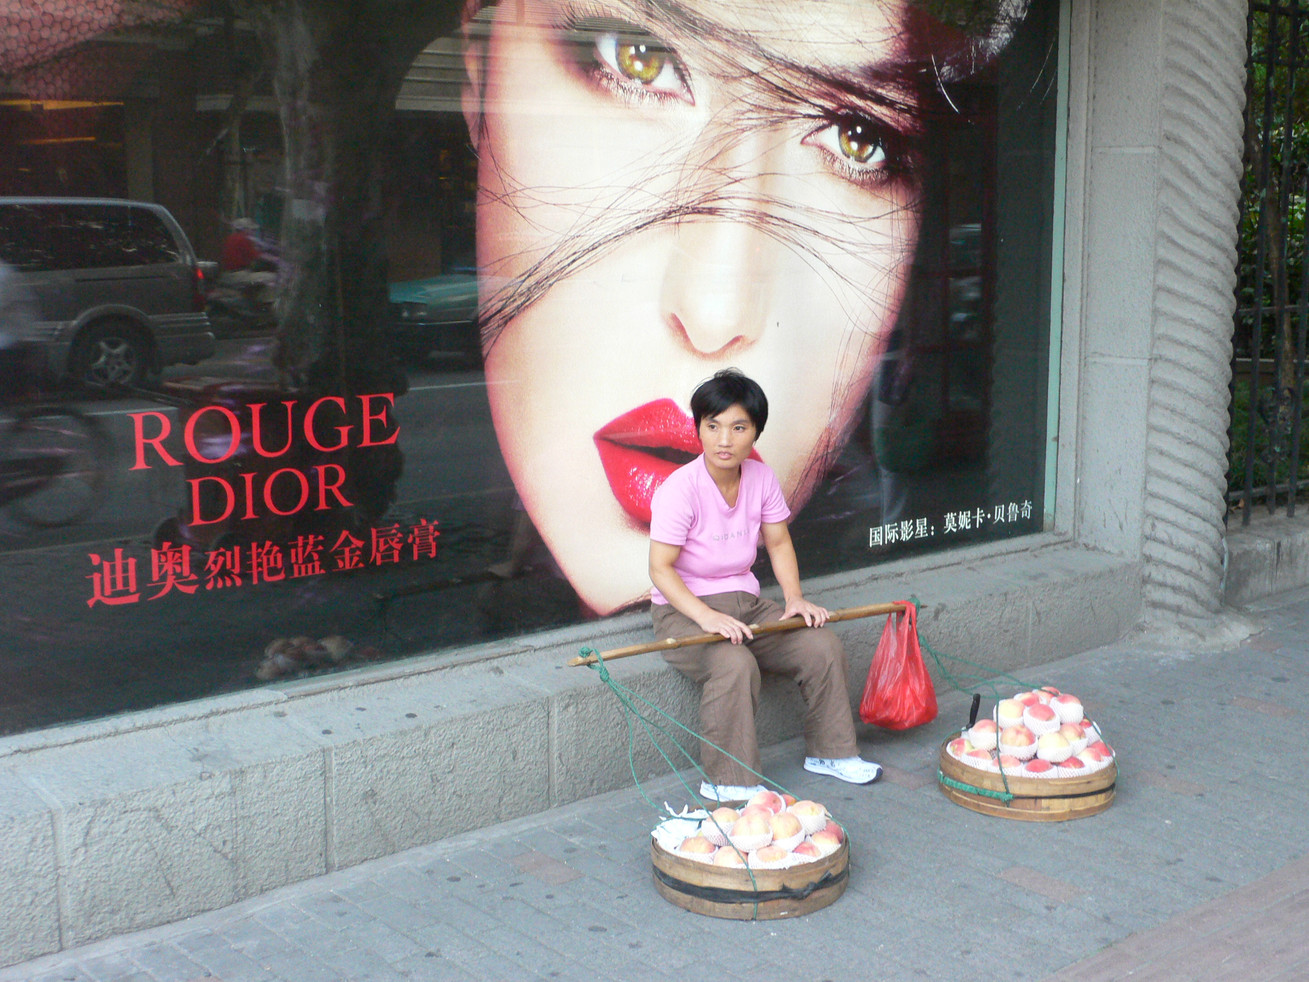 Rouge Dior and a young peach vendor.